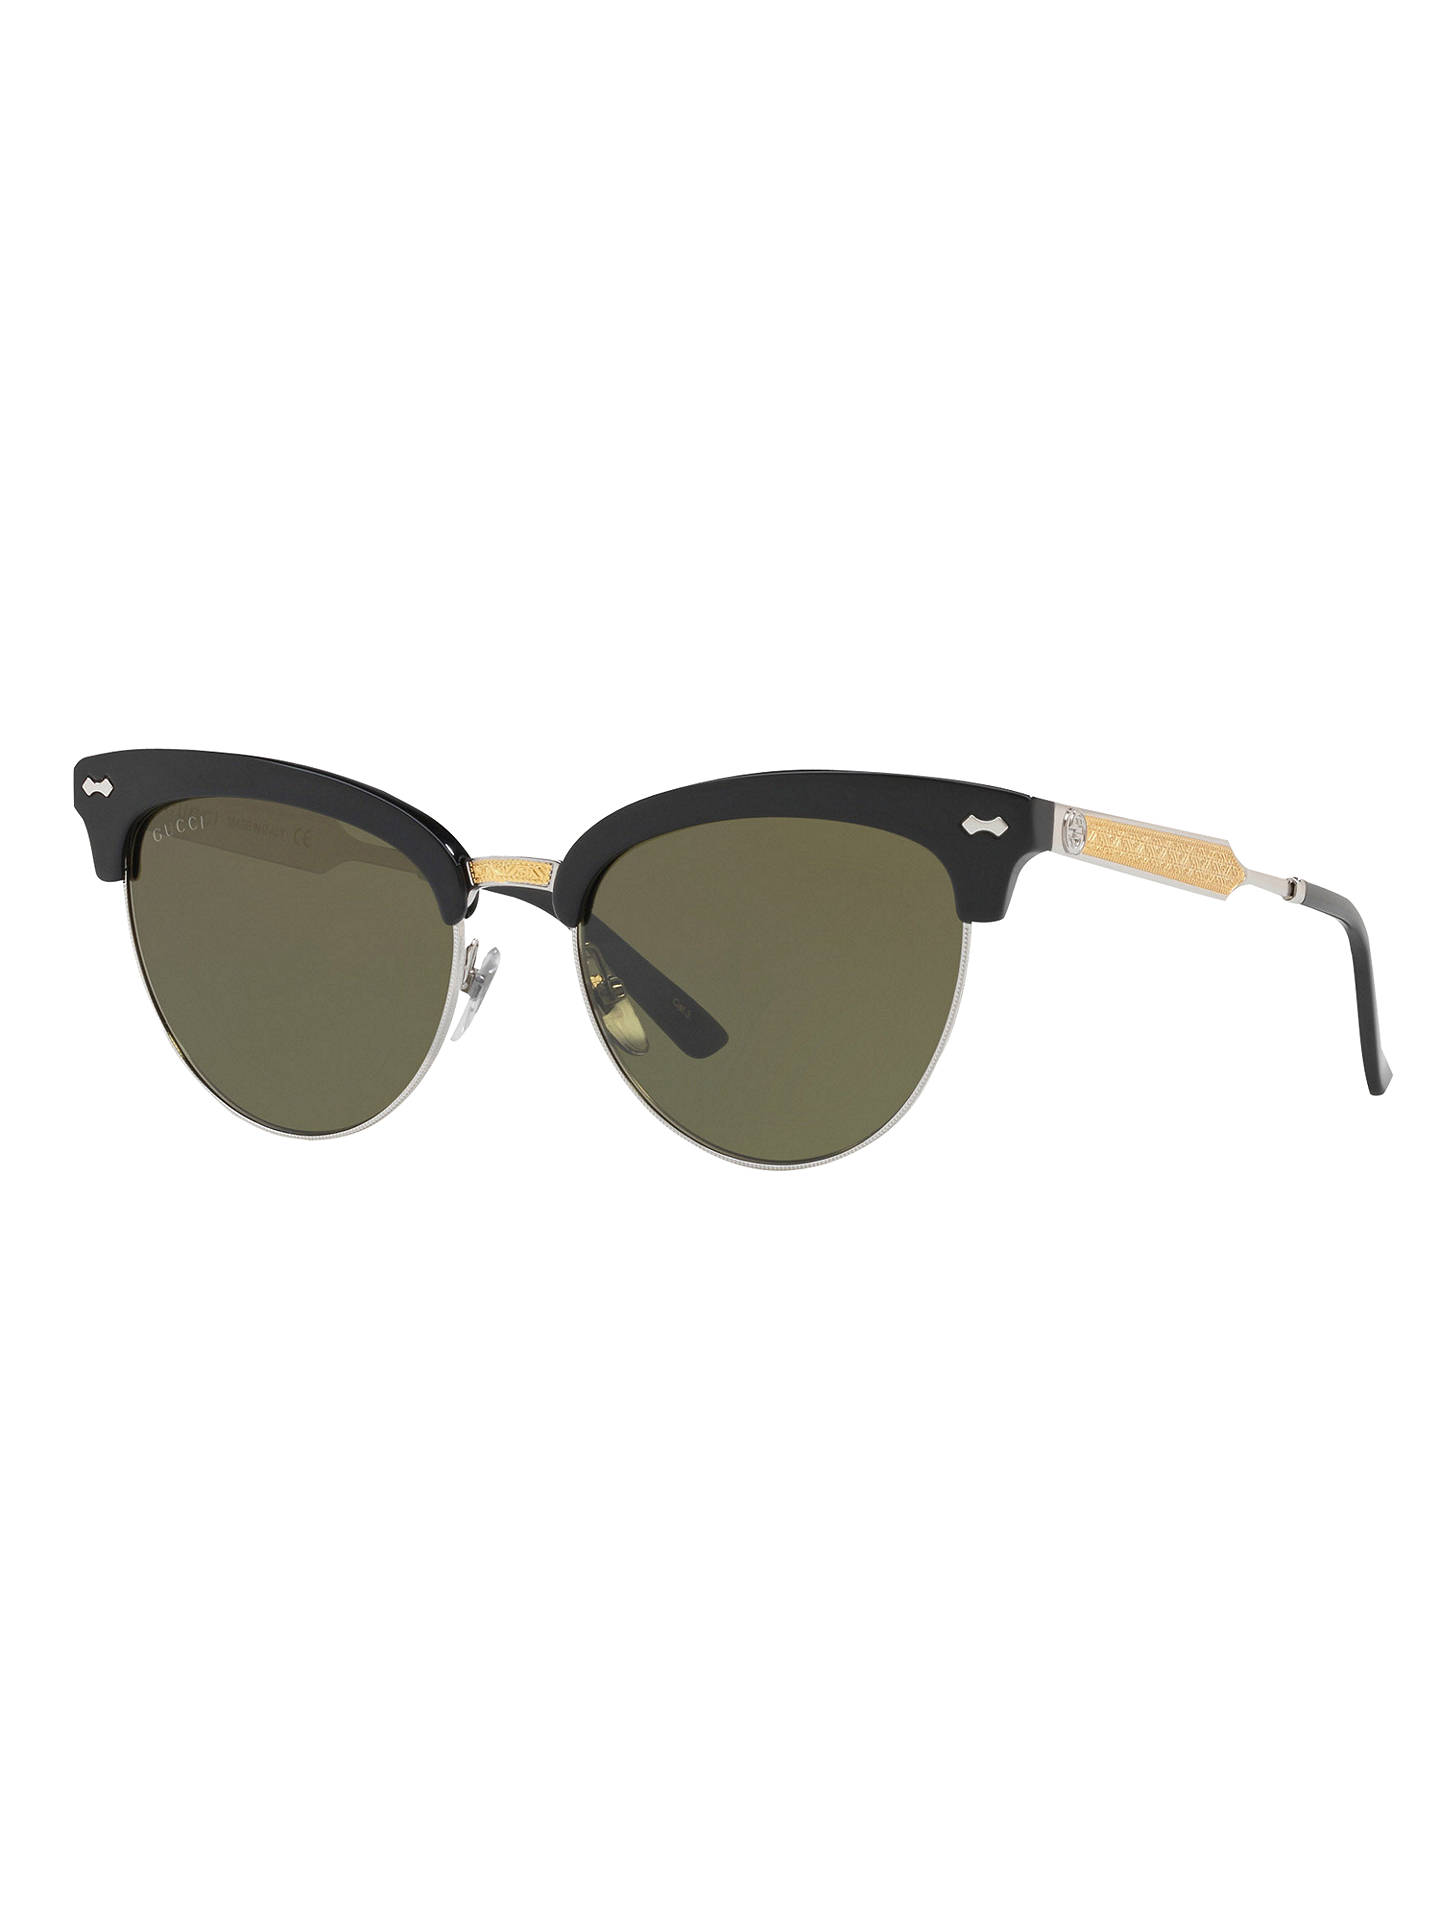 9bac9669b83 Buy Gucci GG0055S Cat s Eye Sunglasses